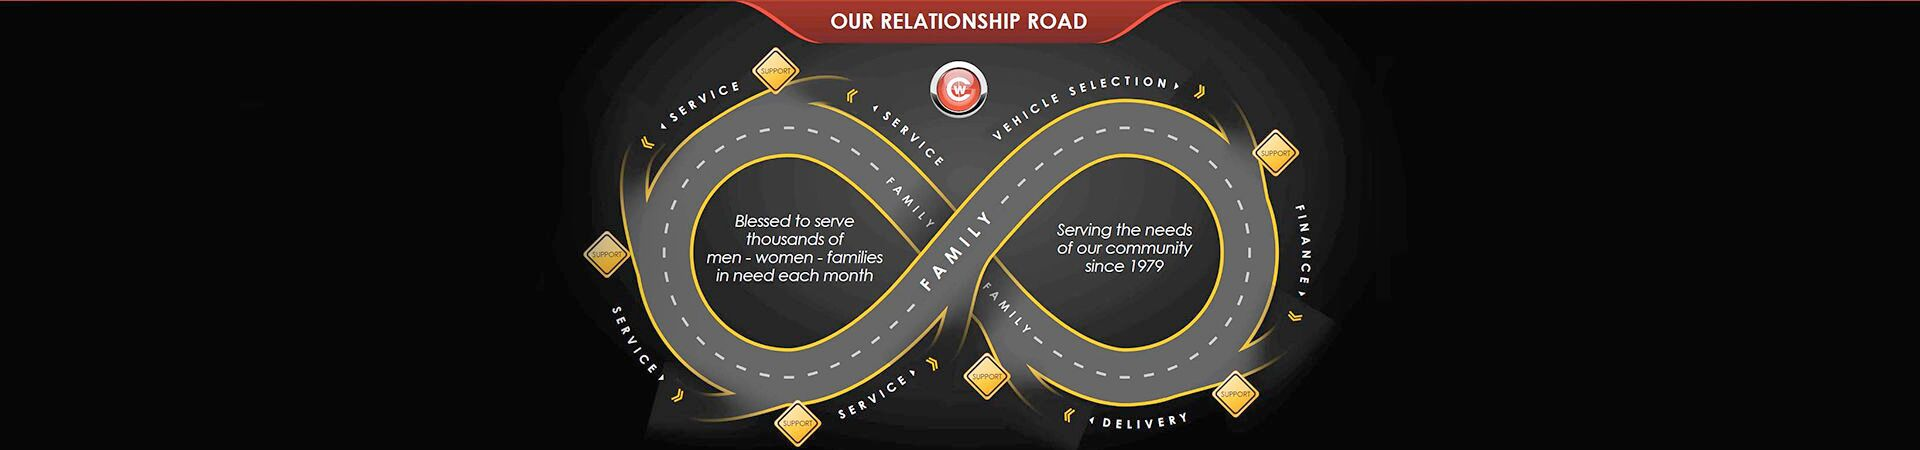 Relationship Road